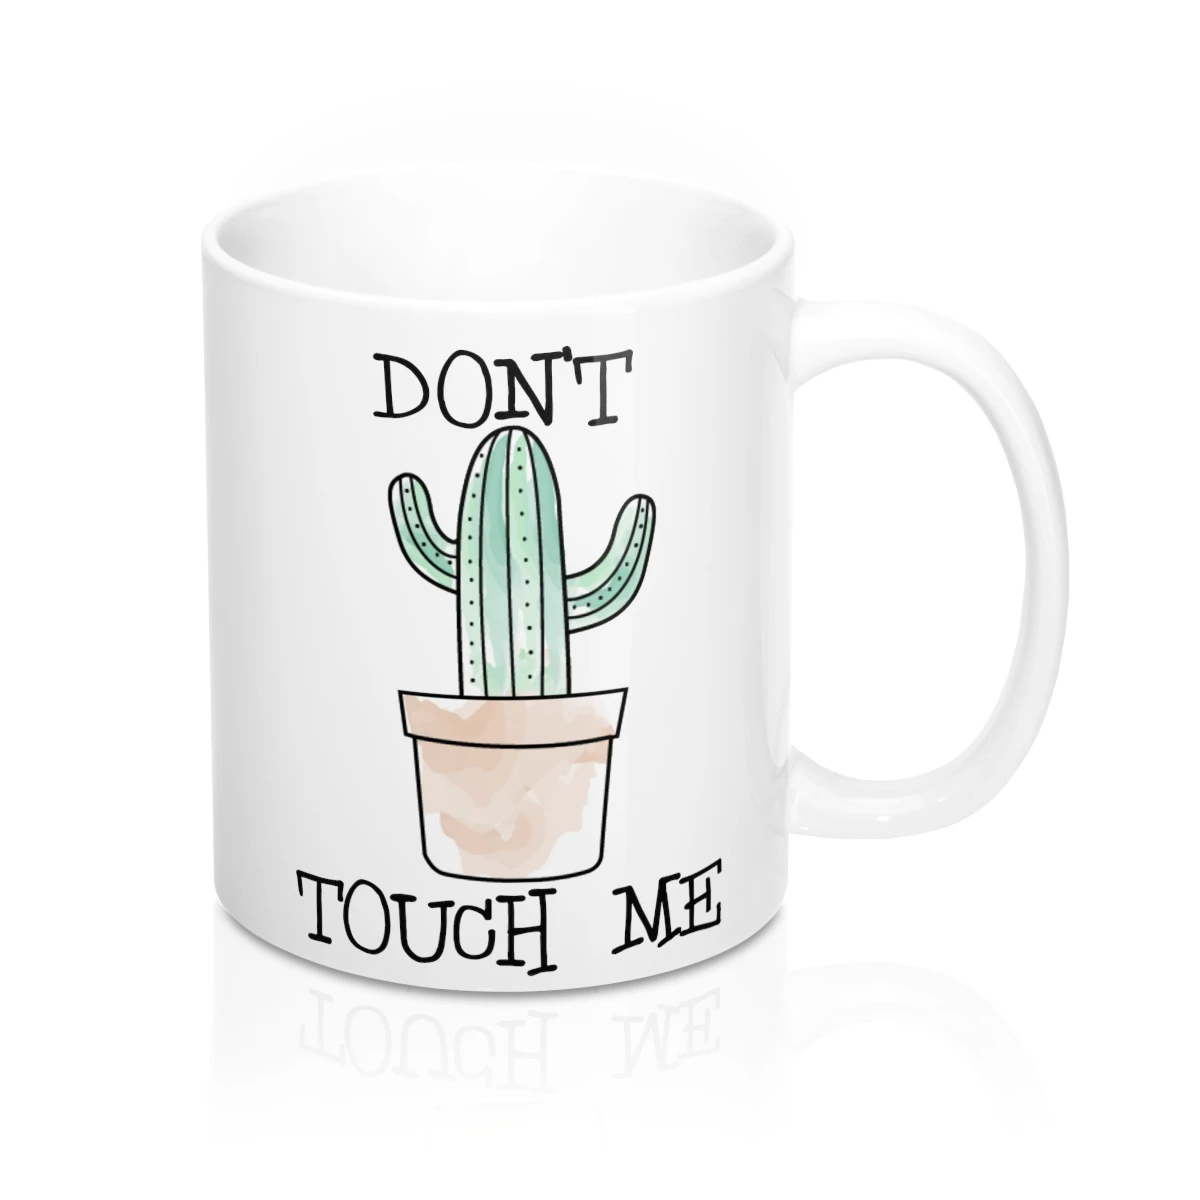 11oz Coffee Cup Bunch of Pricks Mug Don/'t be a Prick Mug Funny Cactus Mug